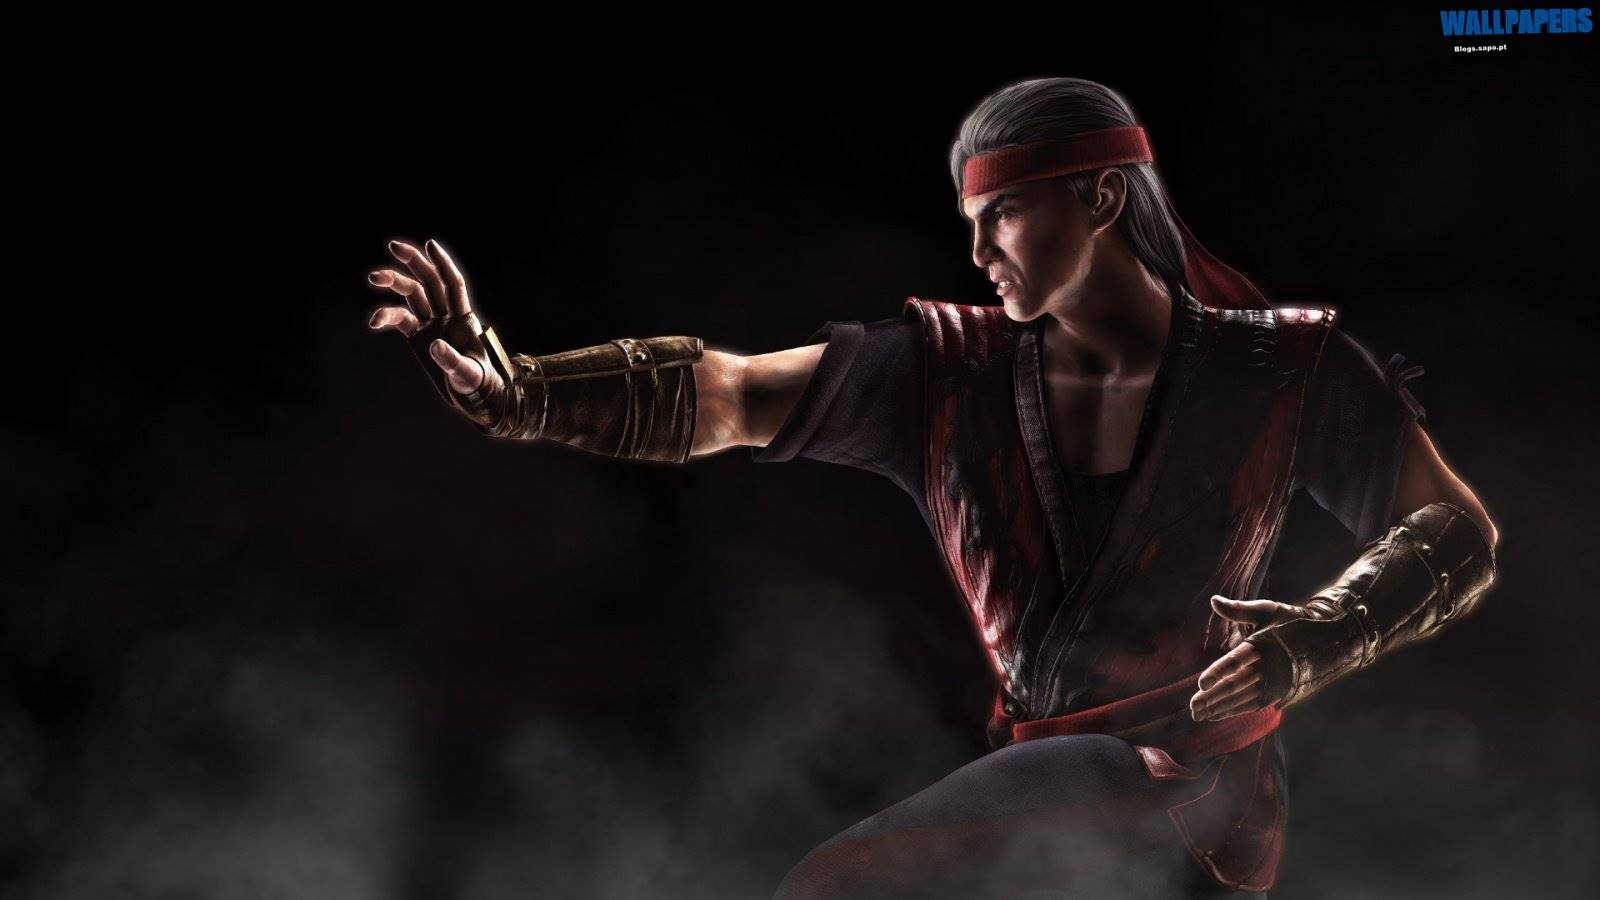 Liu Kang Mortal Kombat X 1600900 Wallpaper 29 HD